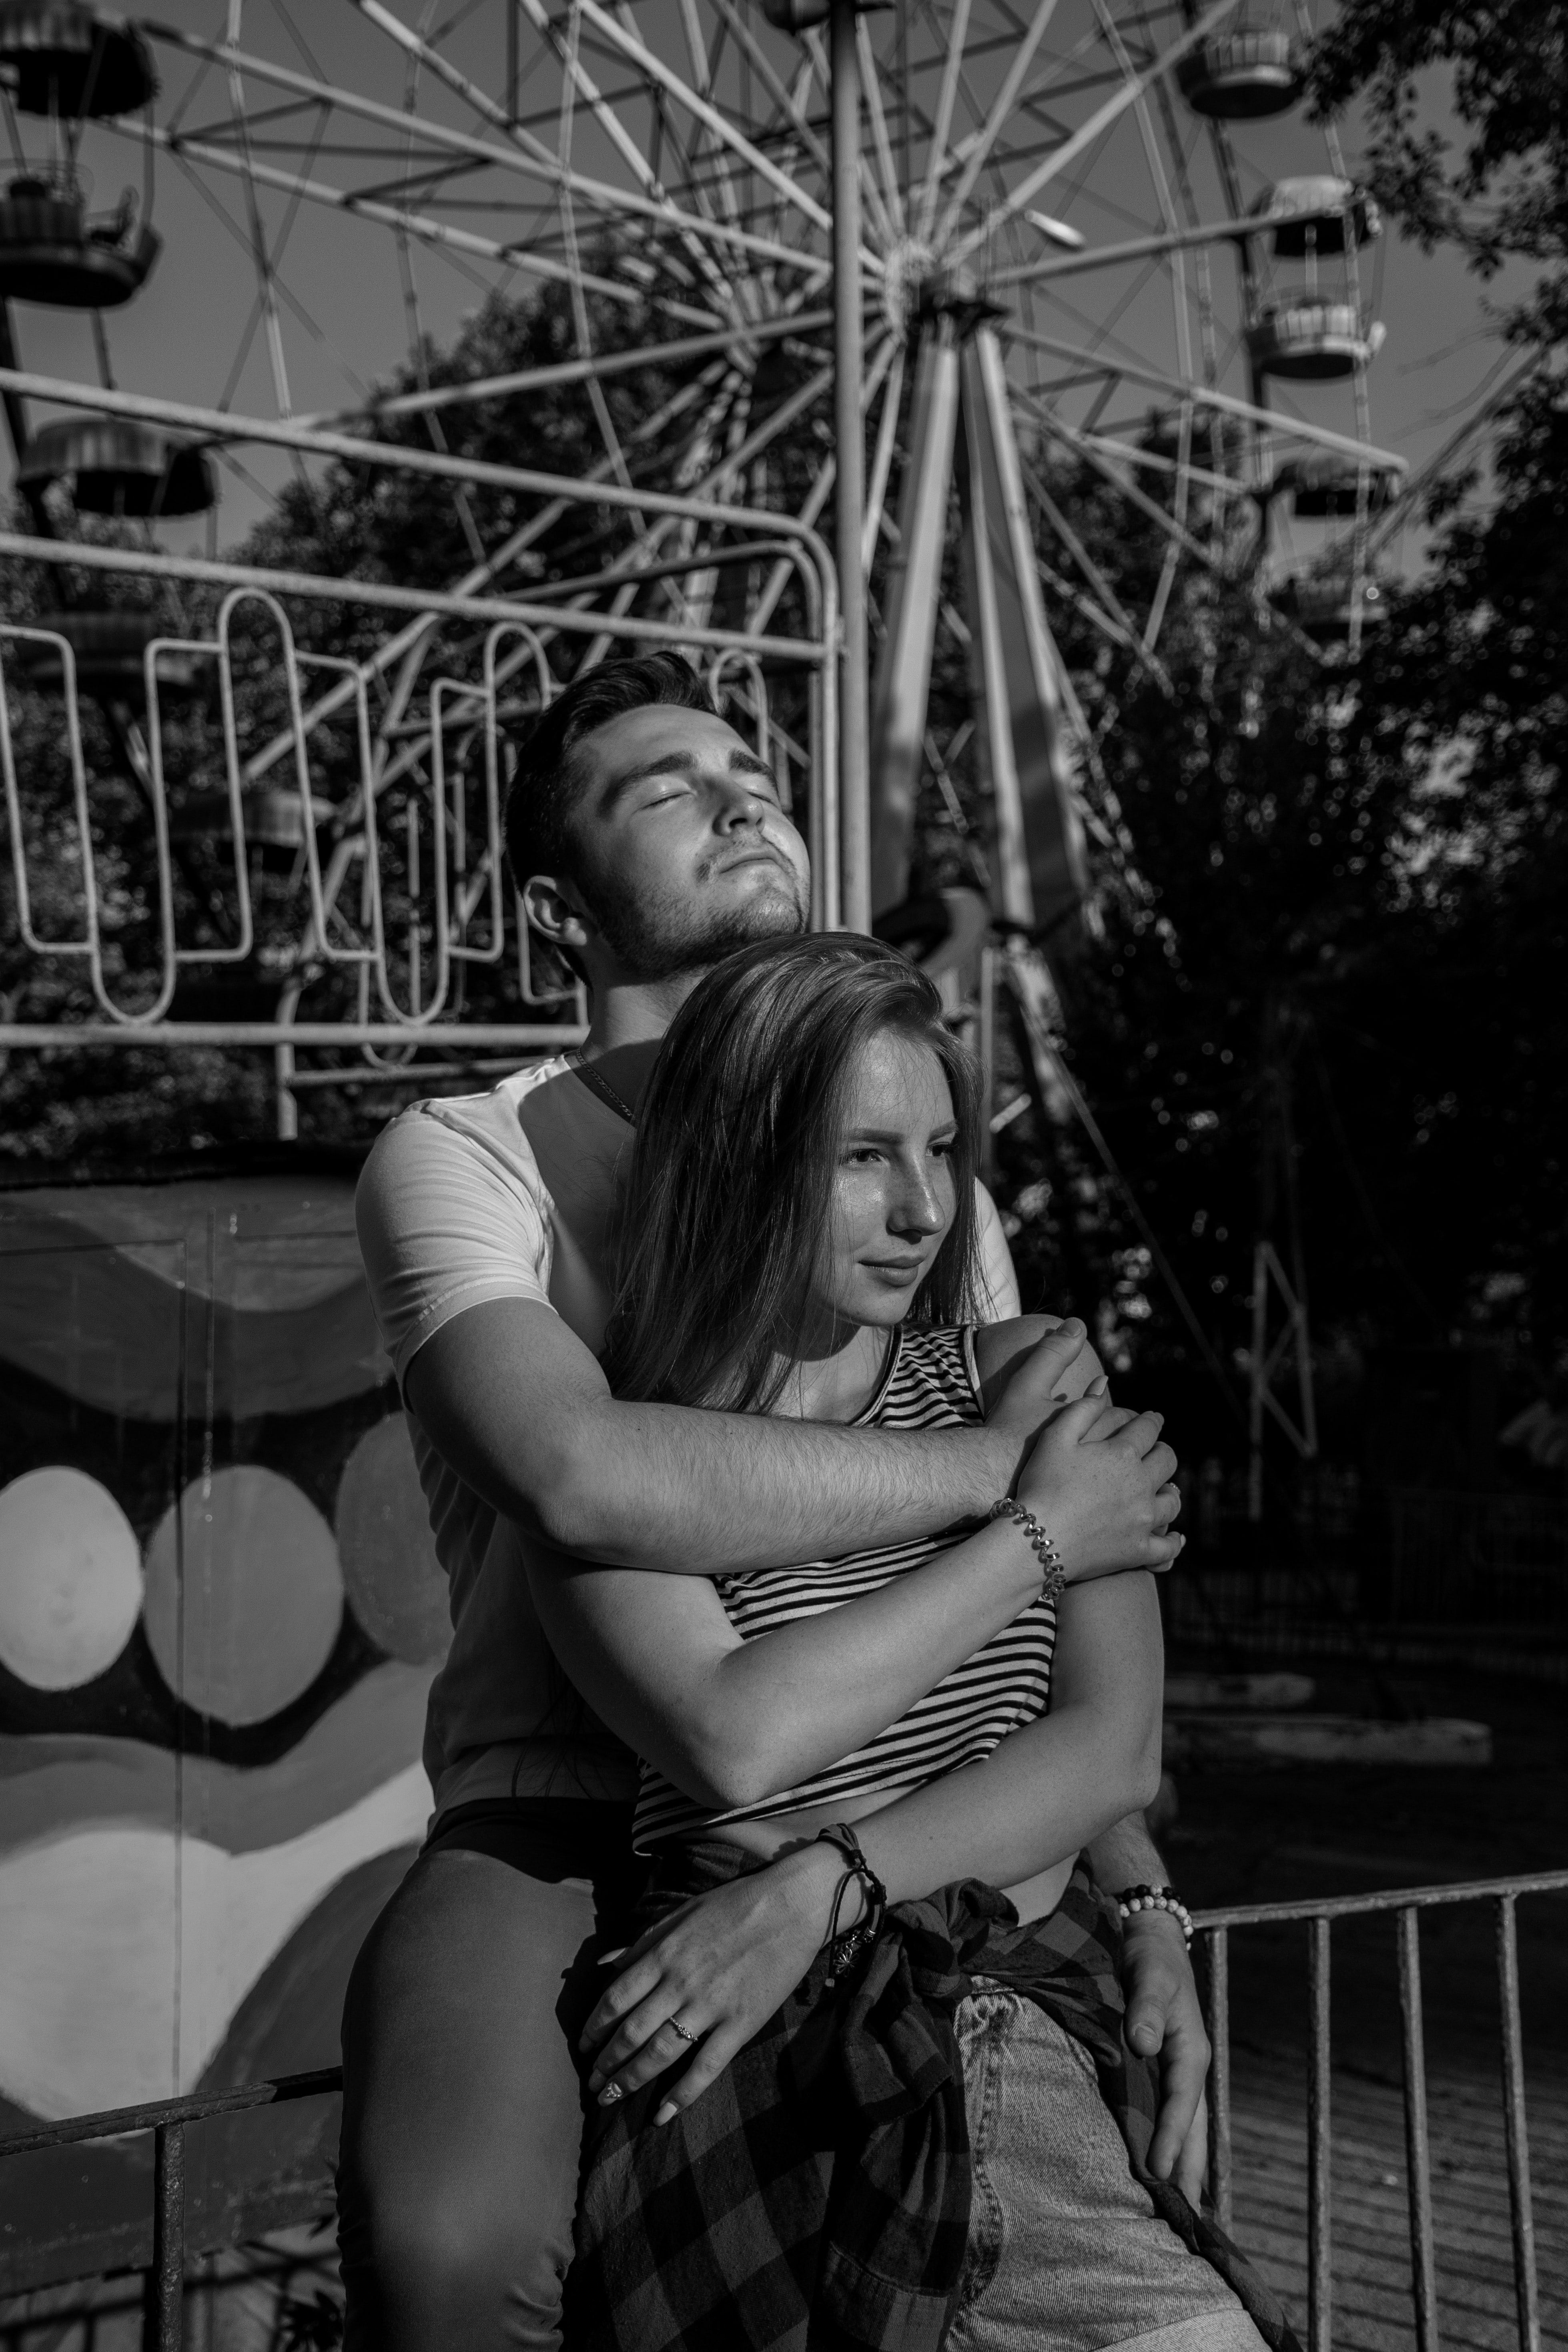 grayscale photo of man hugging woman near Ferri's wheel